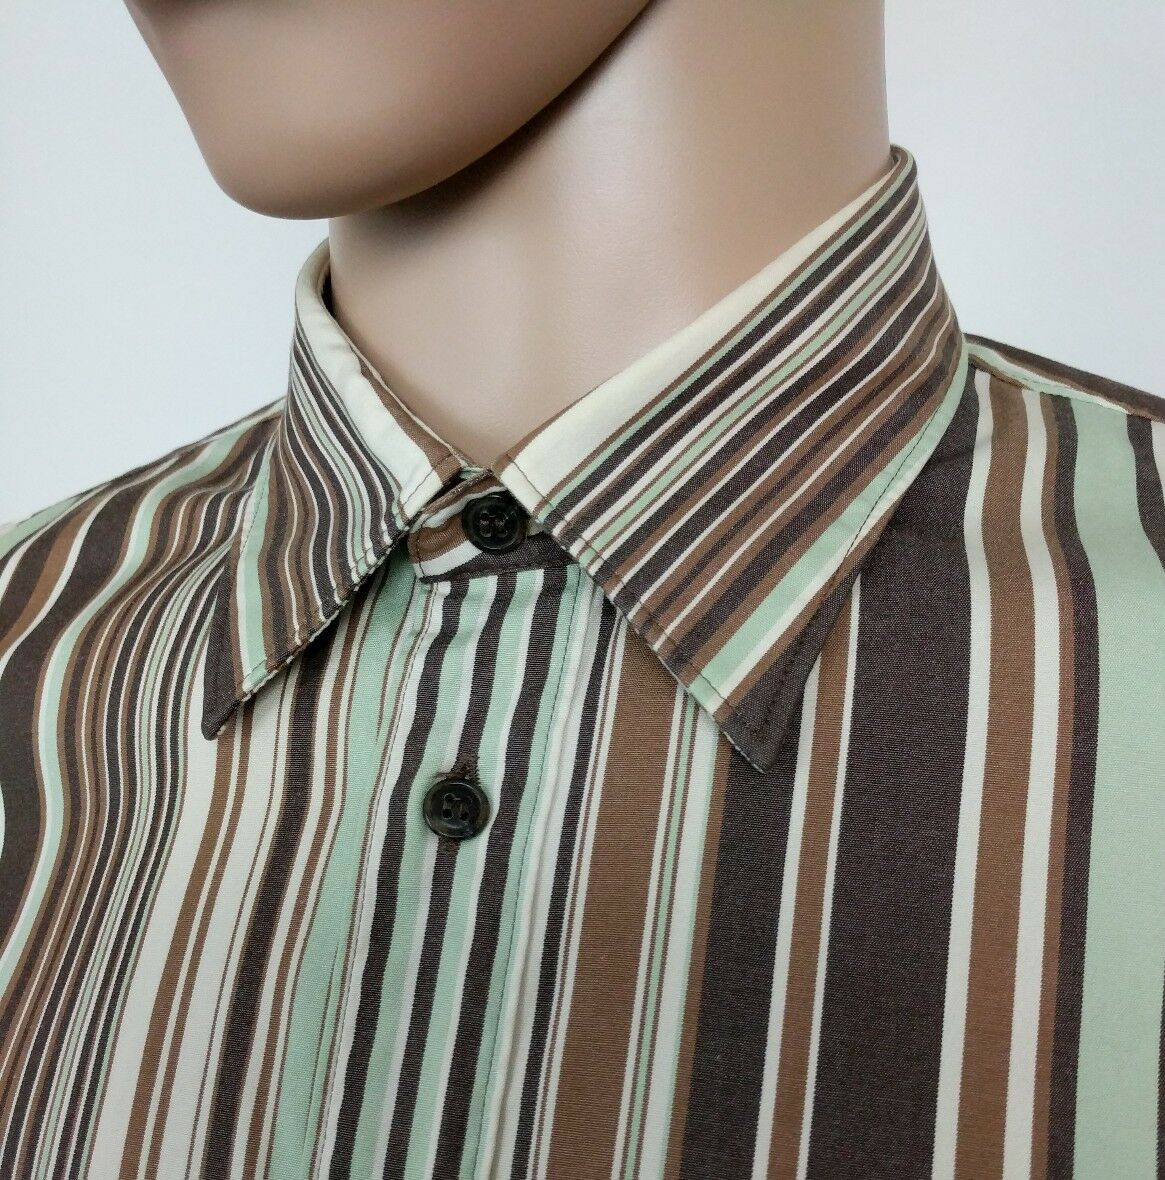 b8391629 Hugo Boss Mens Shirt Brown Mint Green Stripe Size M , 16 RRP Red Label